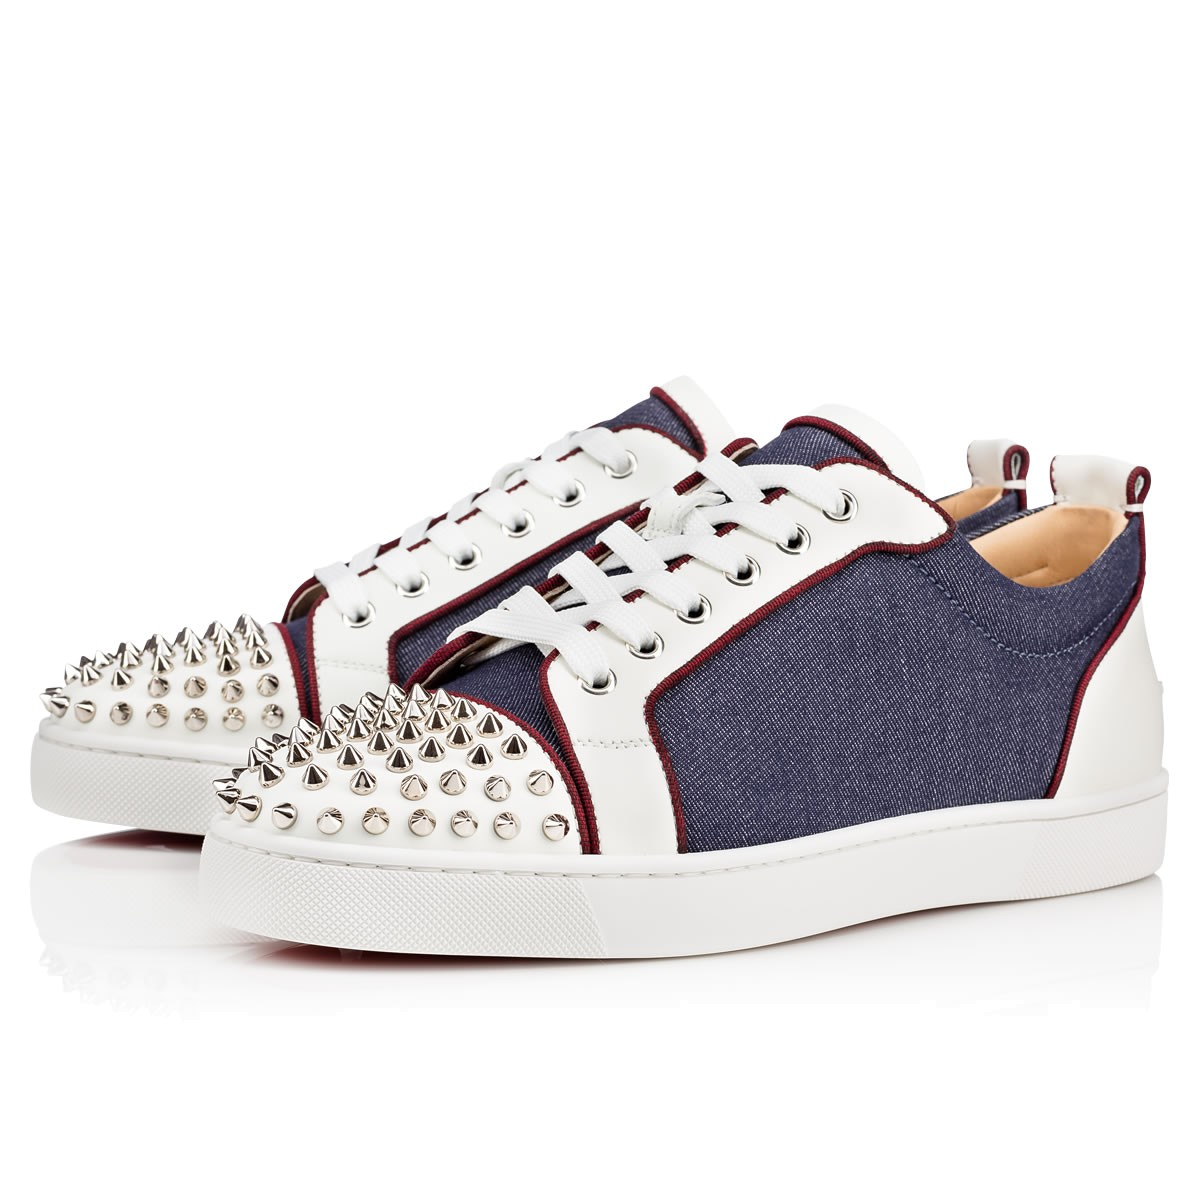 ad9d4357e173 CHRISTIAN LOUBOUTIN Louis Junior Spikes Orlato Men S Flat Version  Blue Silver Leather - Men Shoes